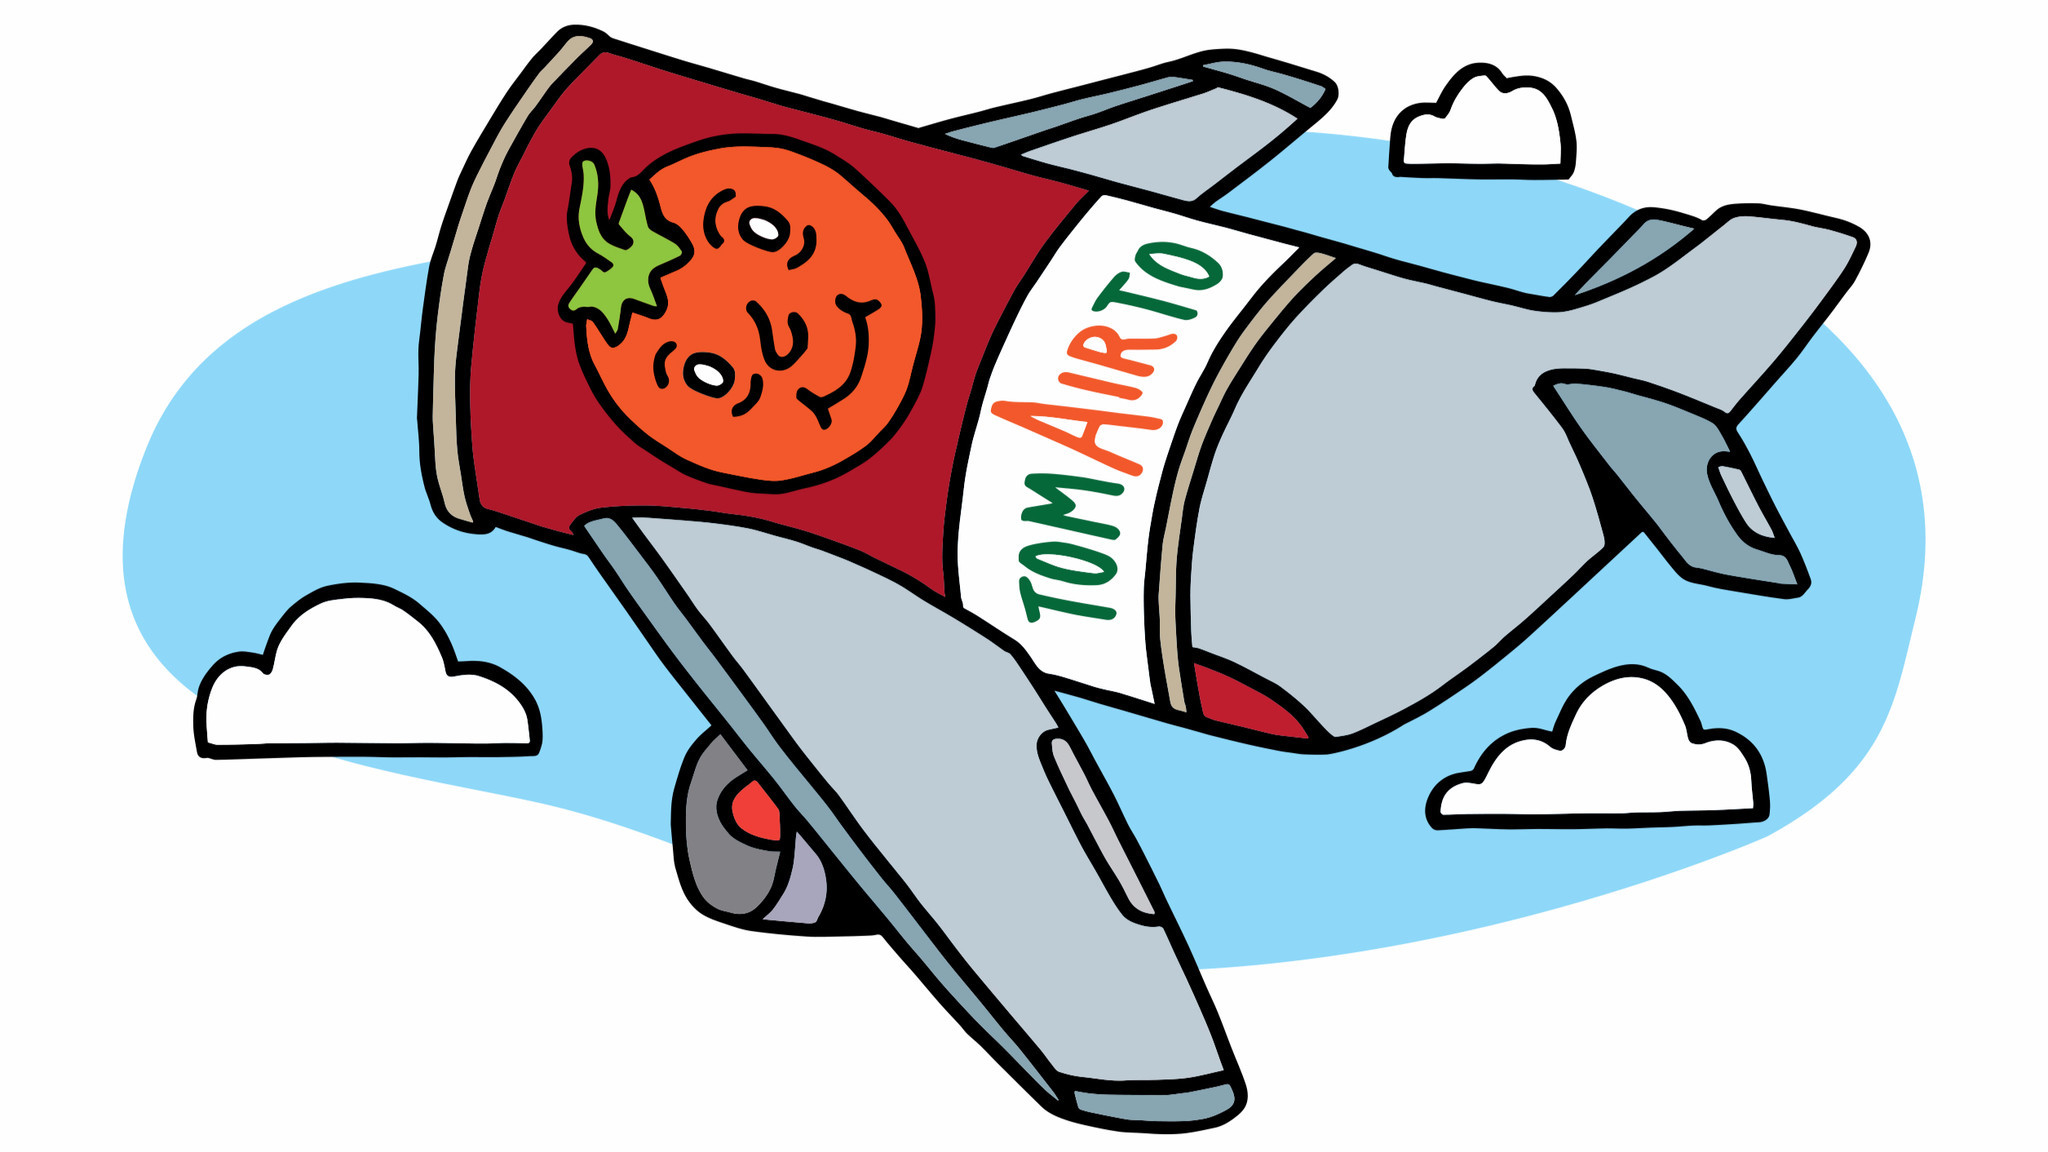 2048x1152 Why Do People Drink So Much Tomato Juice On Airplanes